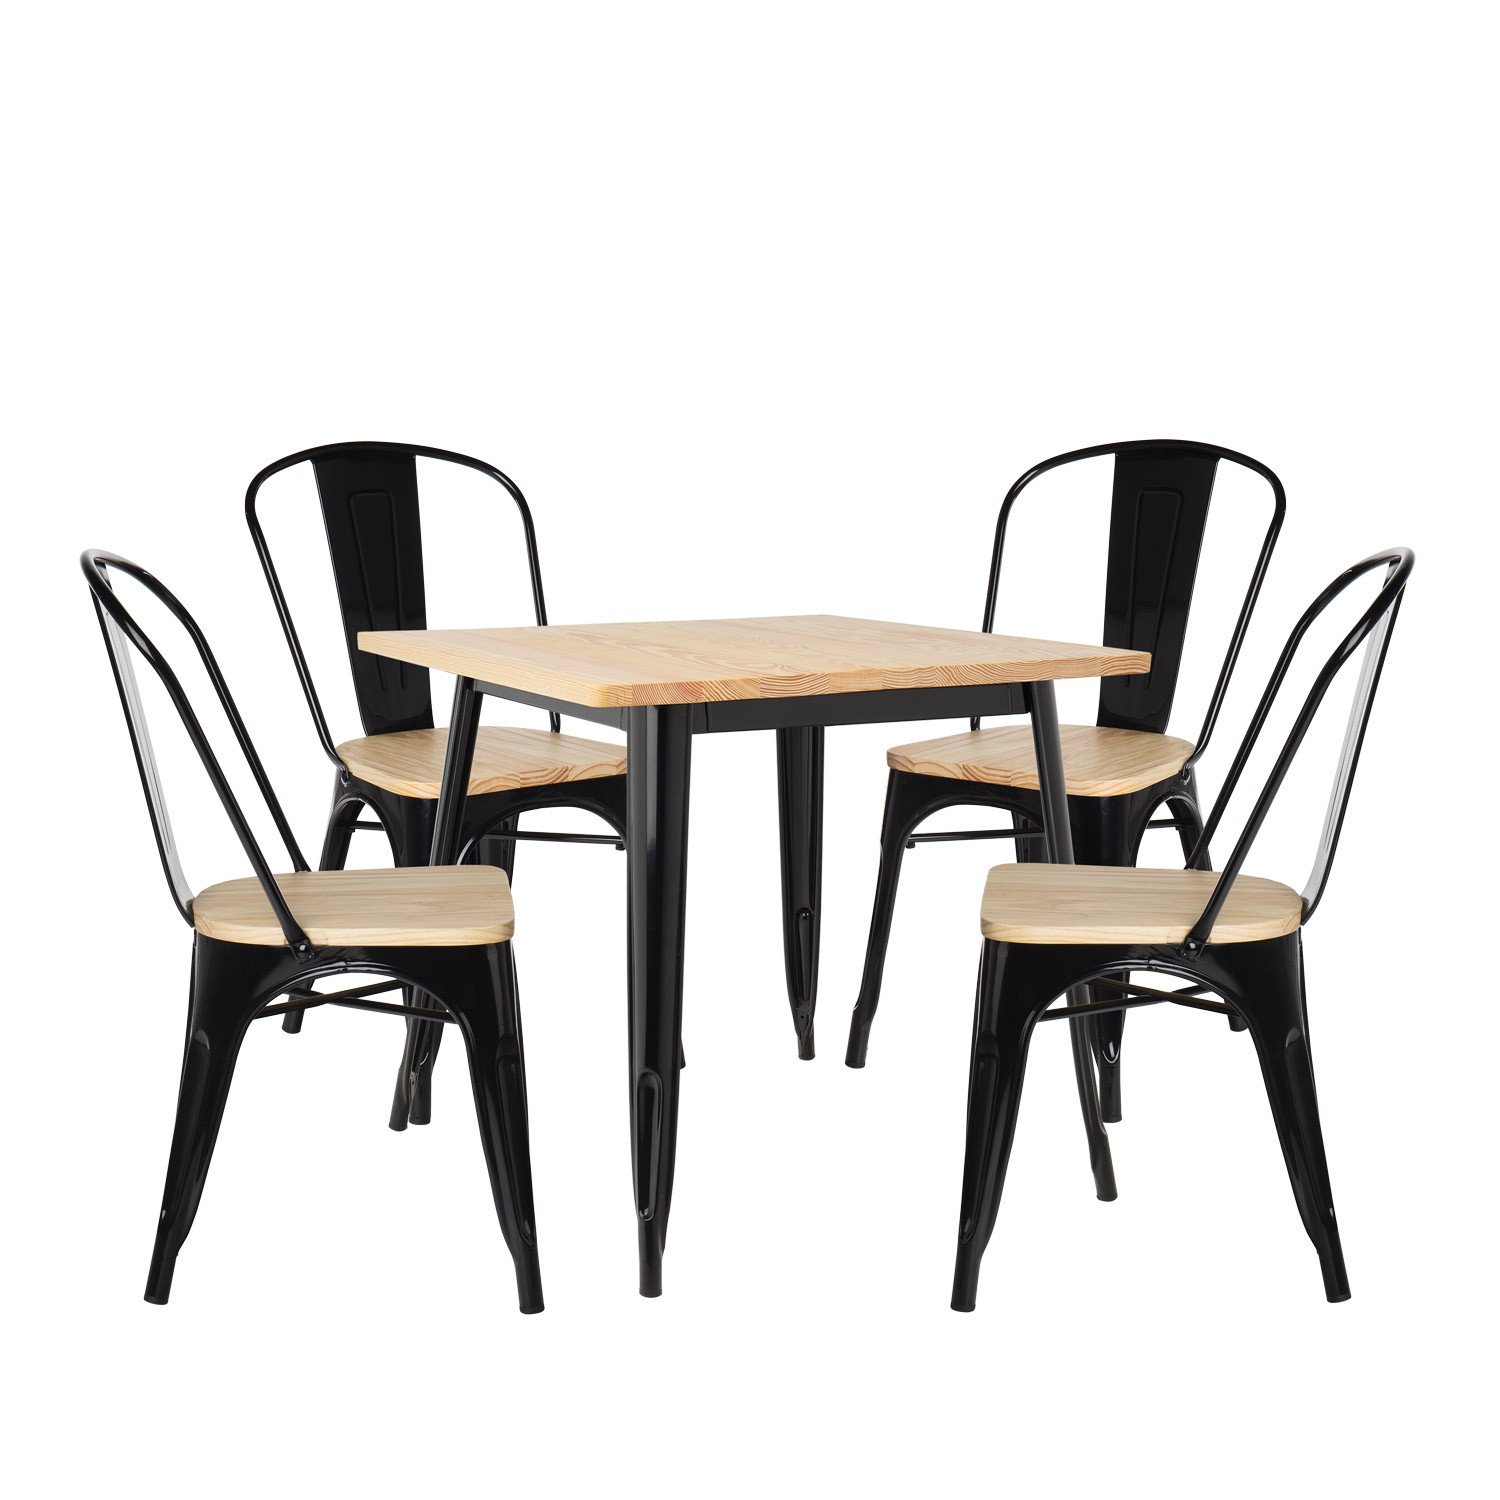 Ensemble Table Et Chaise De Jardin Best Of Lot De Table Lix Bois 80×80 & 4 Chaises Lix Bois Of 36 Beau Ensemble Table Et Chaise De Jardin